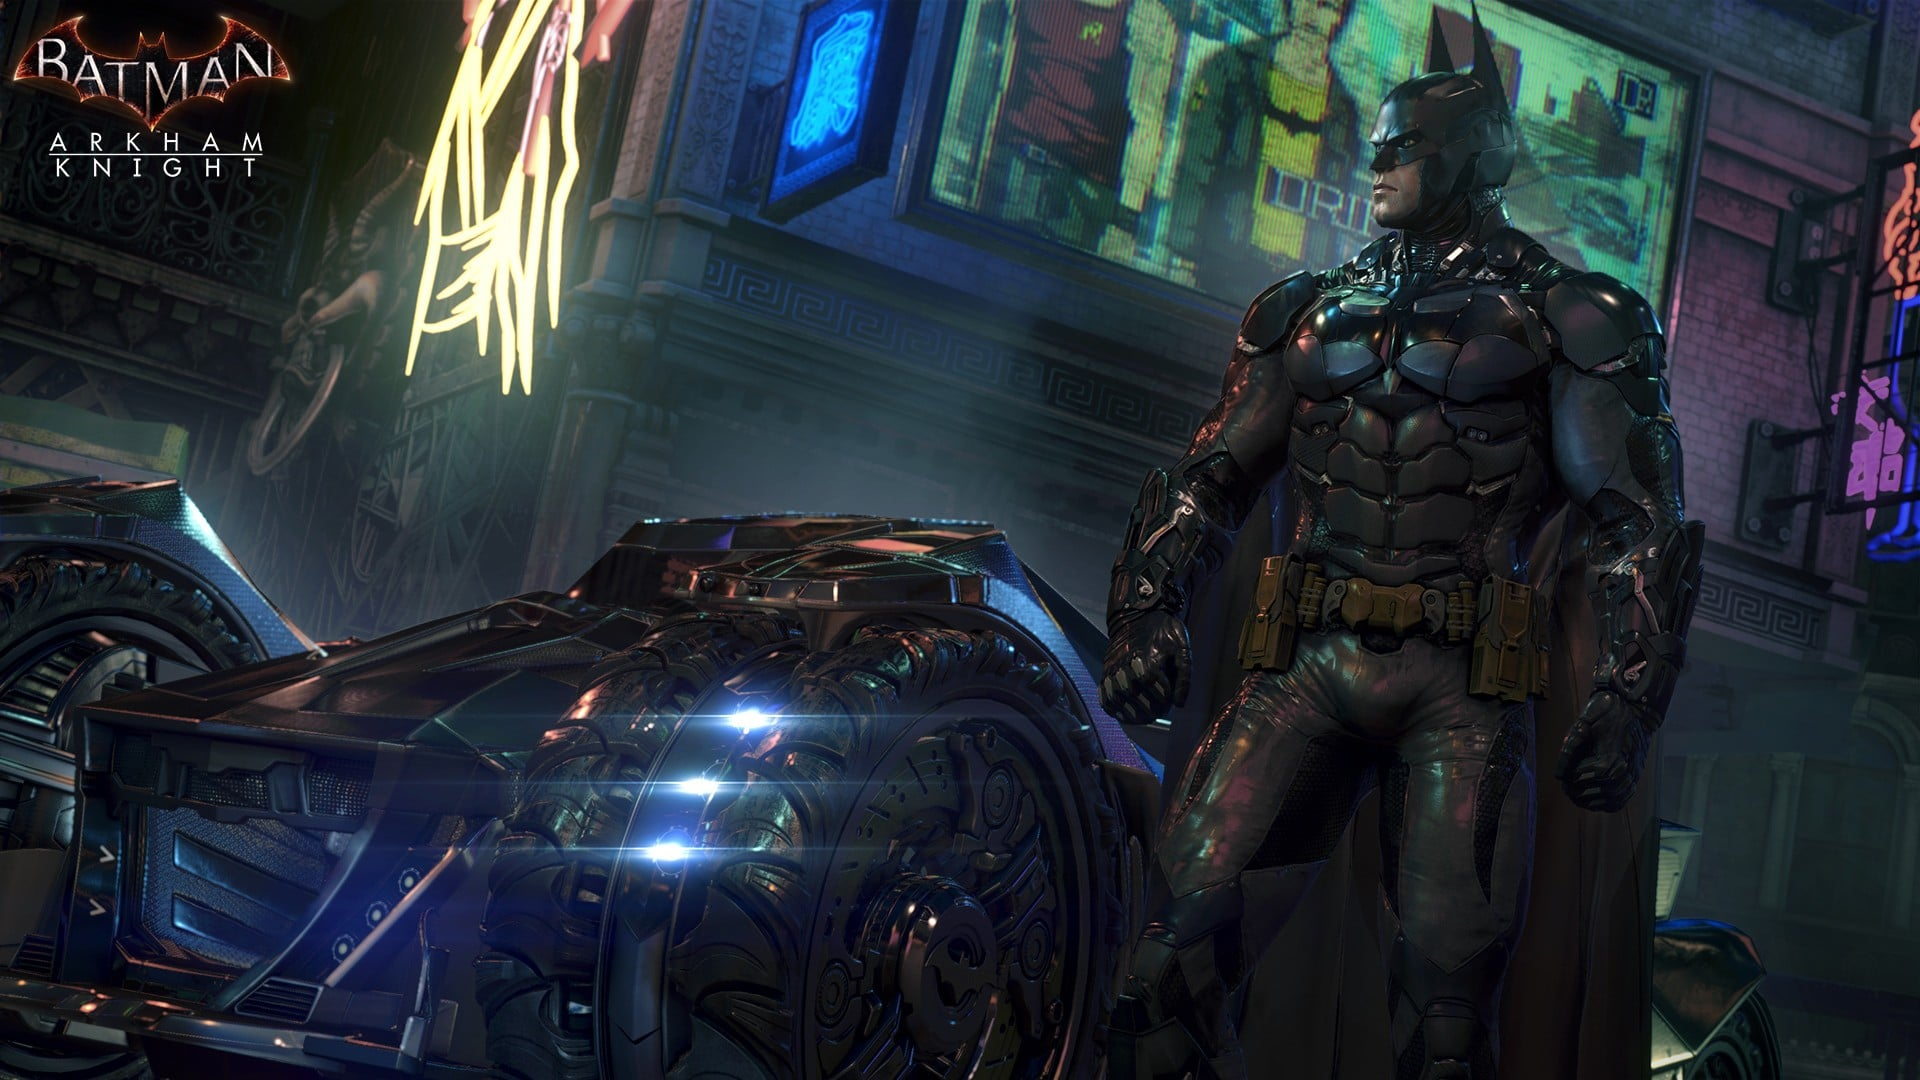 50 Set of Batman : Arkham Knight Wallpaper 1920 X 1080 HD